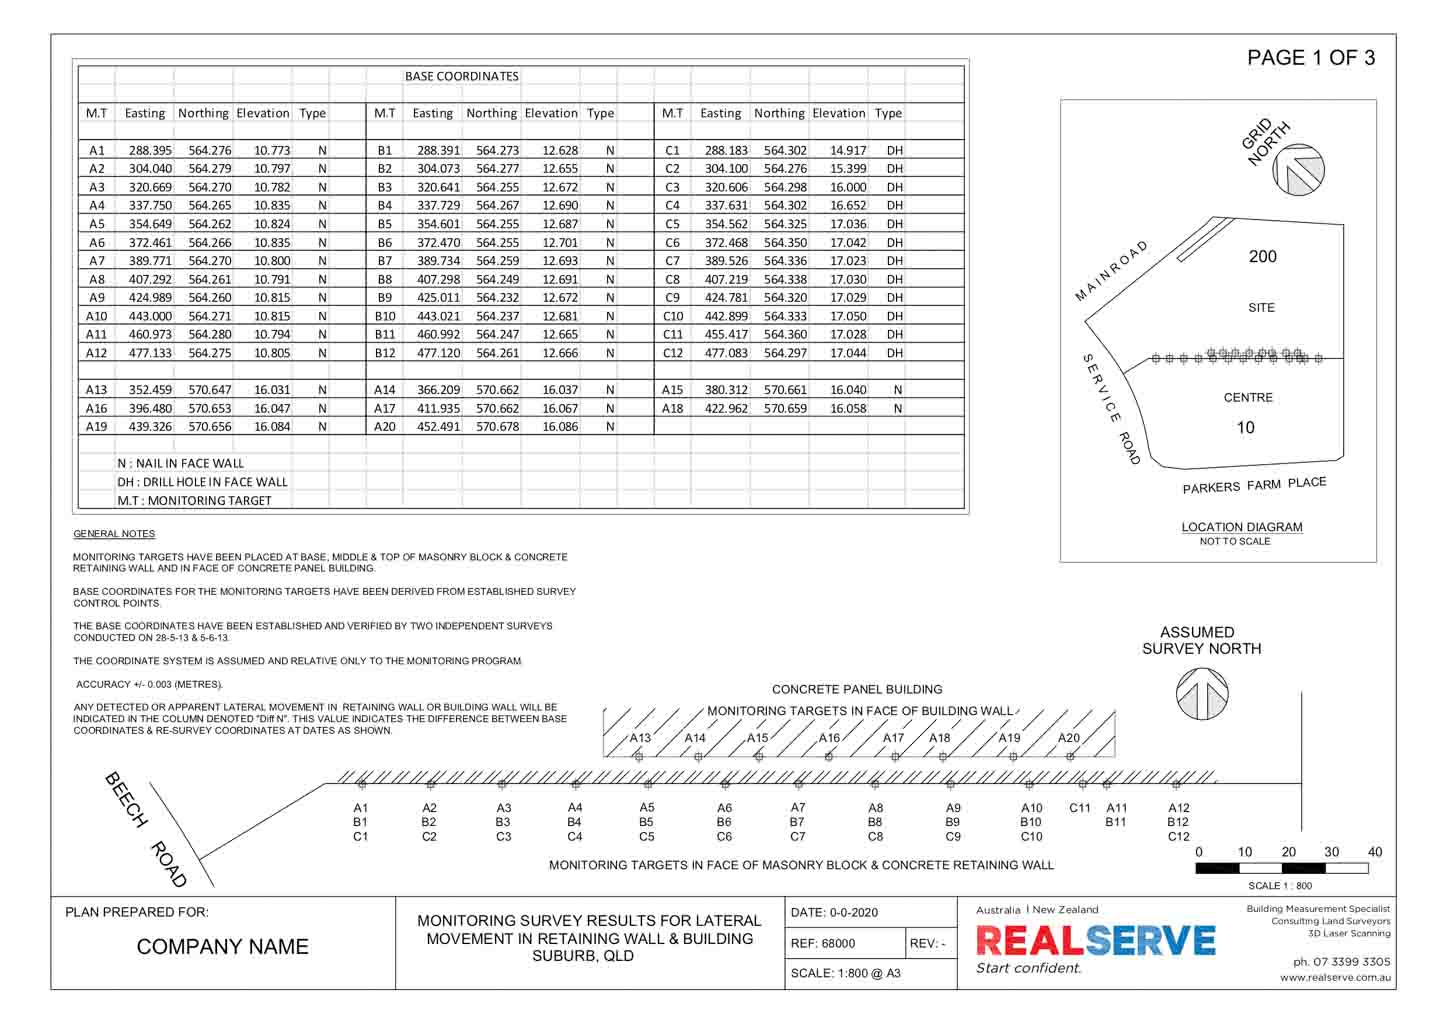 A SAMPLE OF A MOVEMENT MONITORING REPORT FOR A COMMERCIAL PROPERTY SITE BY REALSERVE